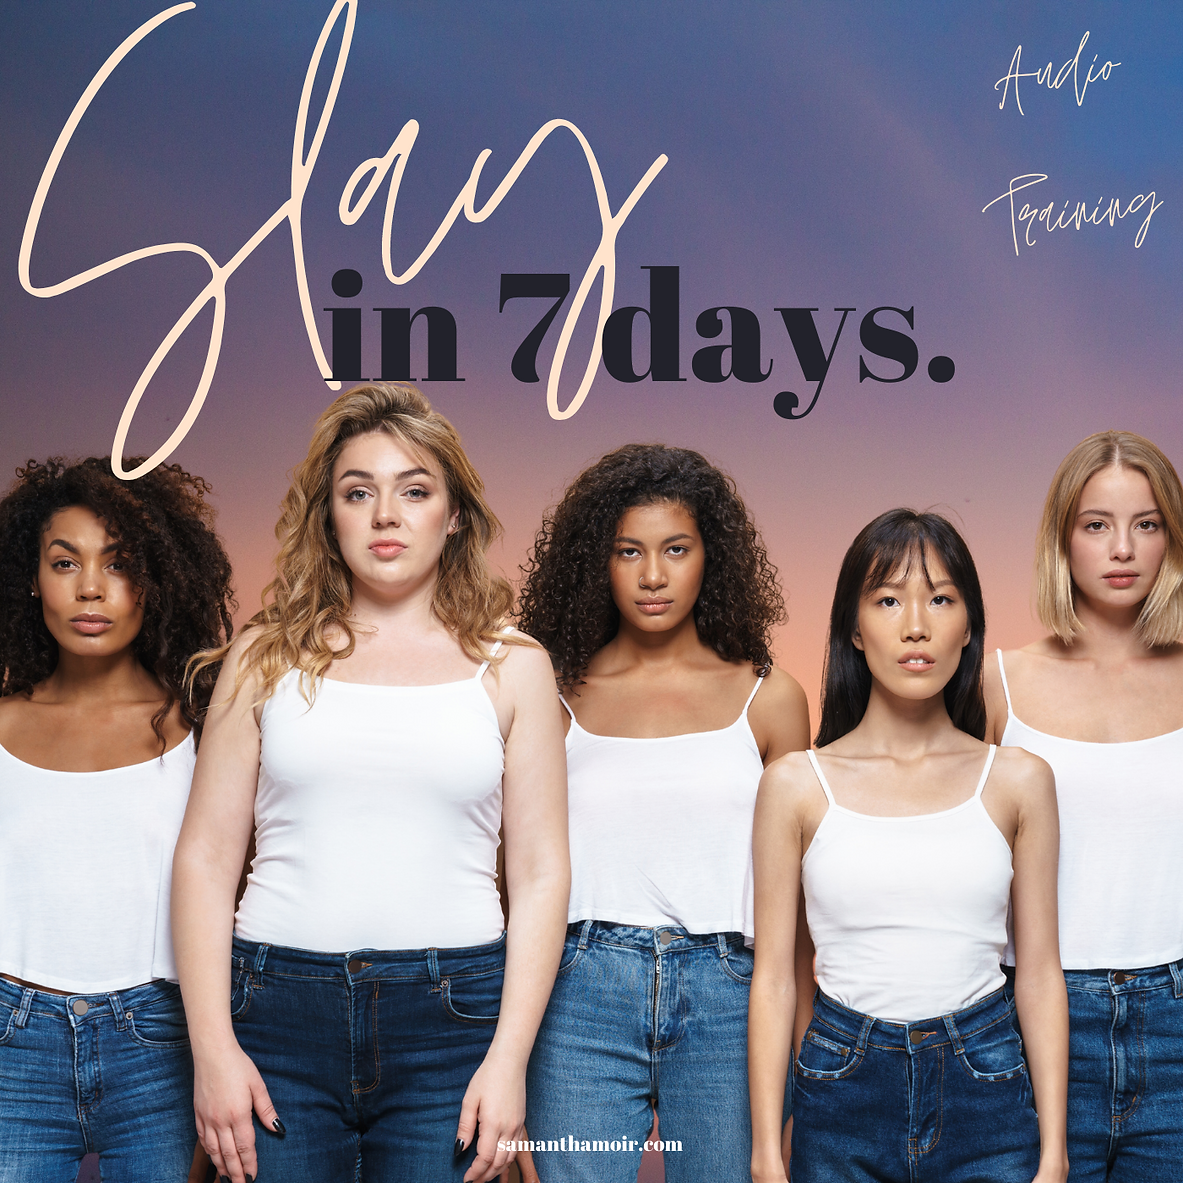 Slay in 7 days.png